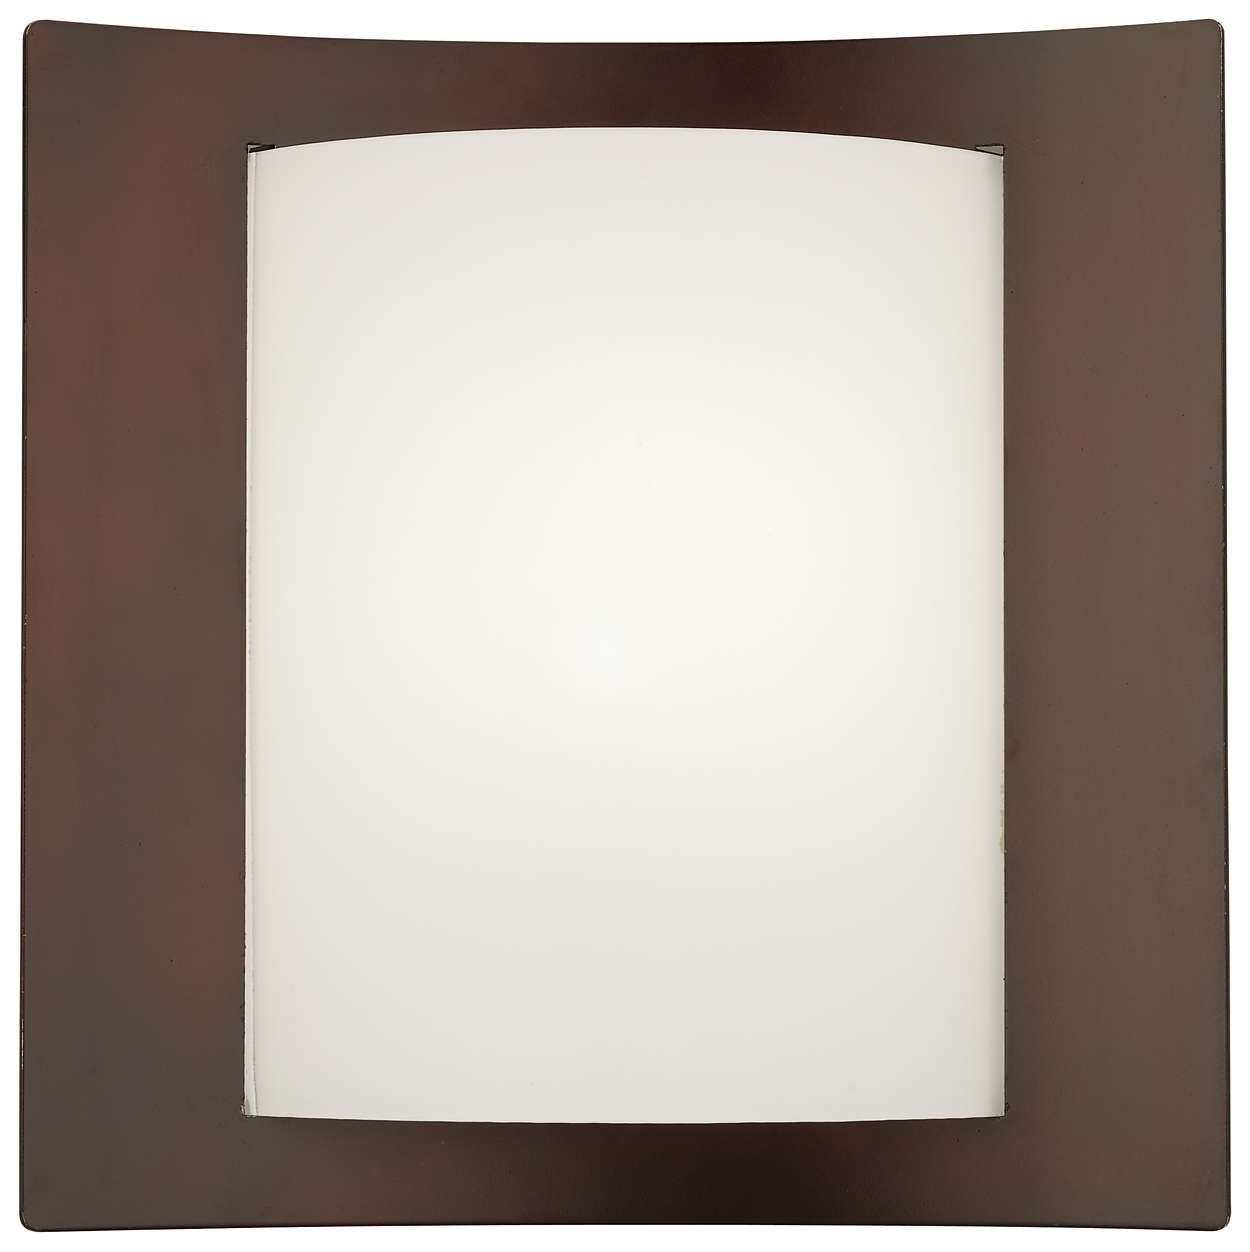 Bow Wrap 1-light Wall in Merlot Bronze finish